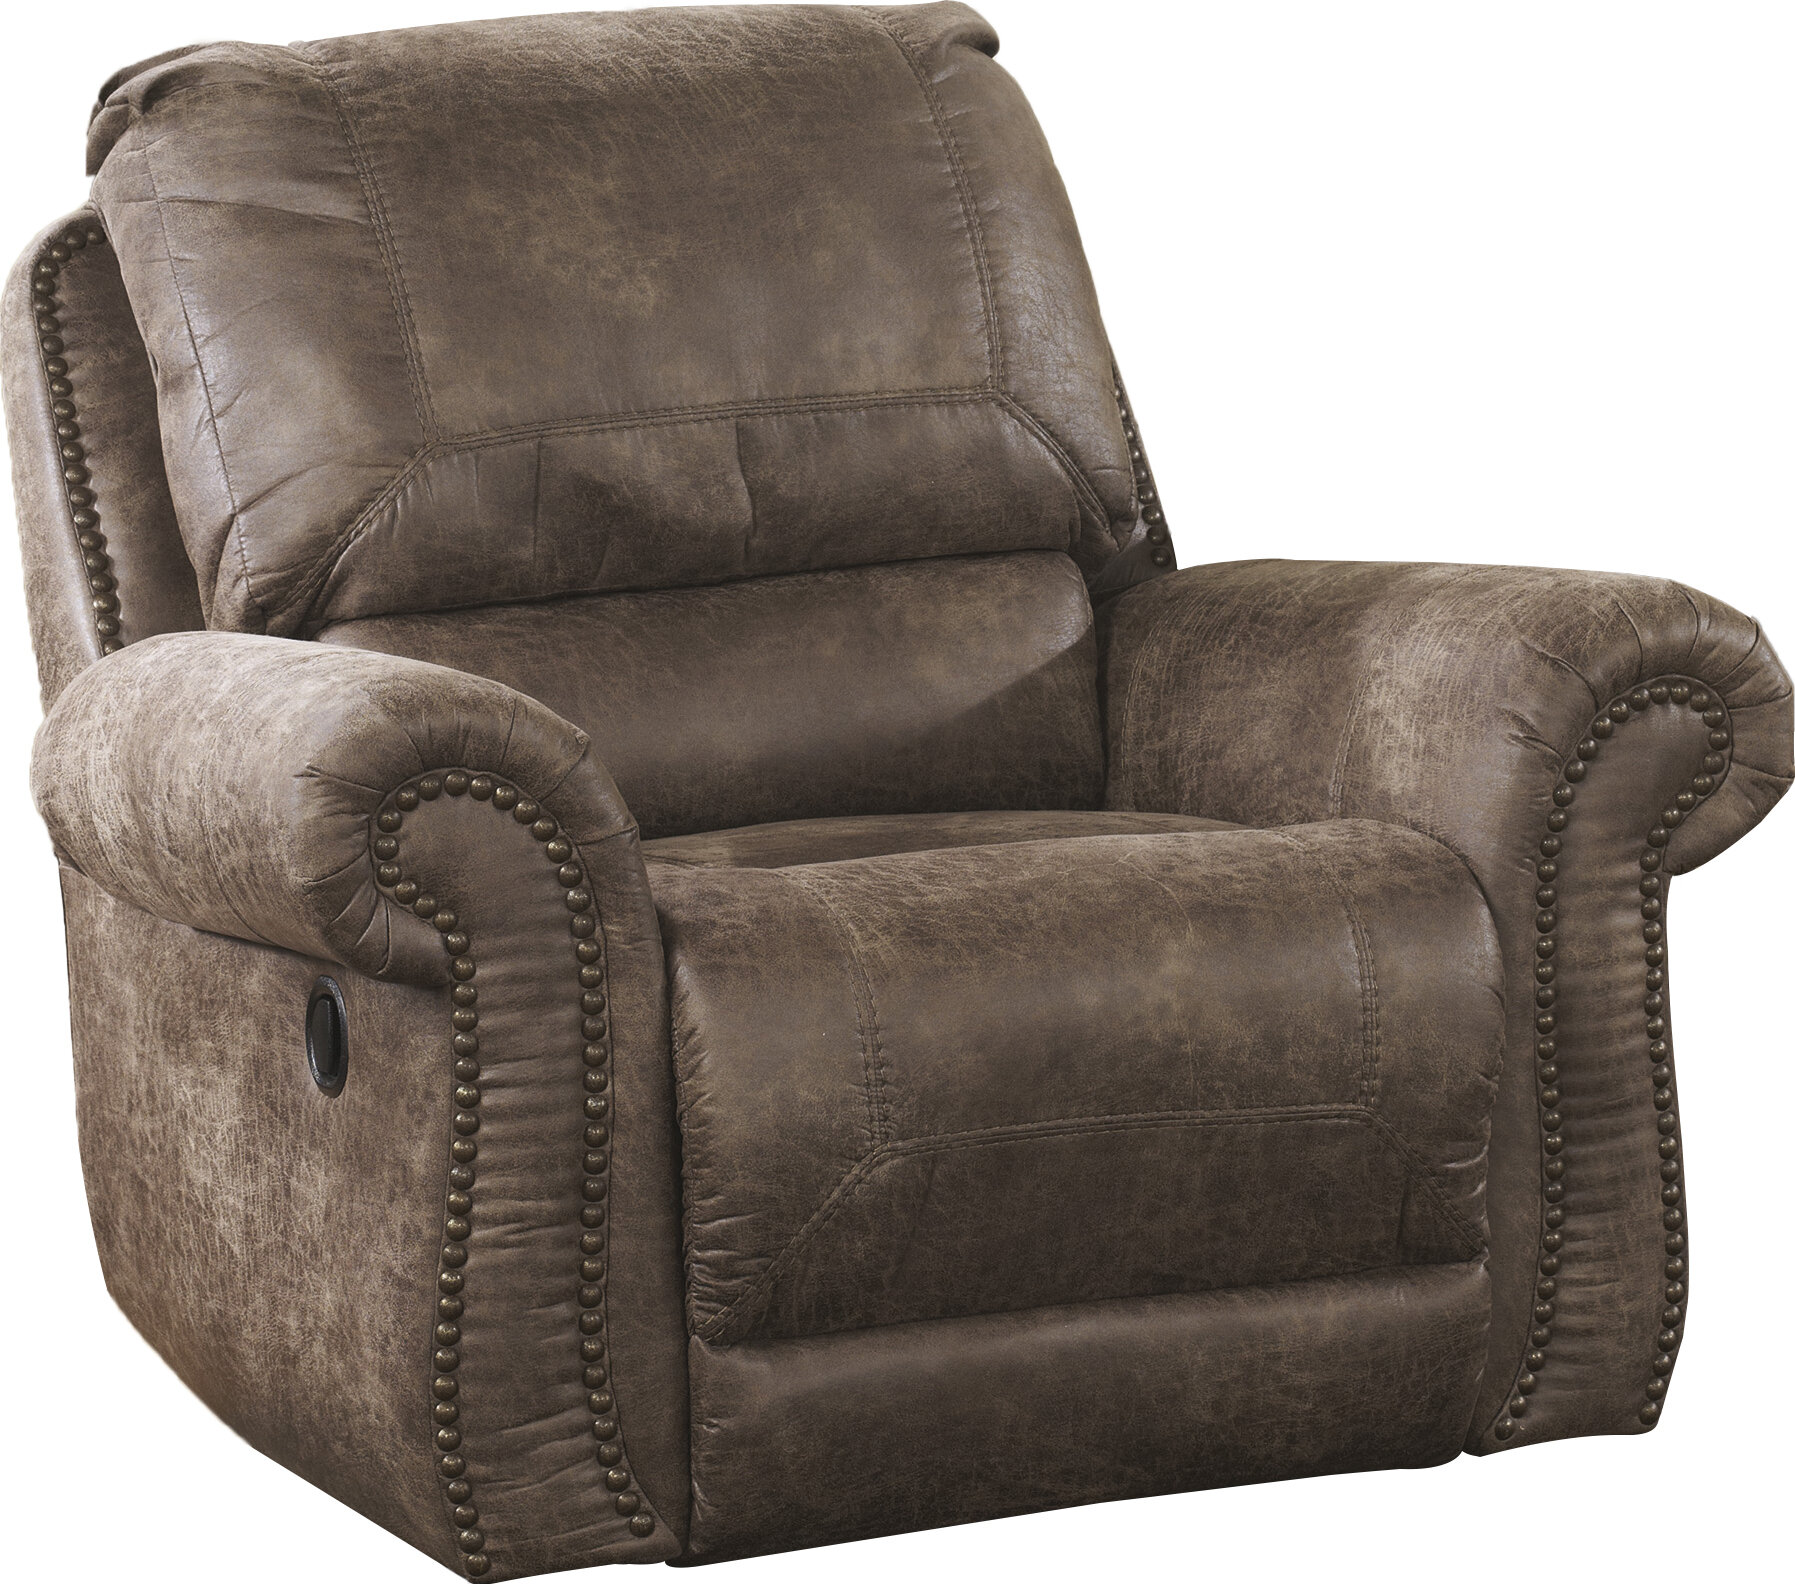 Signature Design By Ashley Evansville Manual Swivel Glider Recliner U0026  Reviews | Wayfair